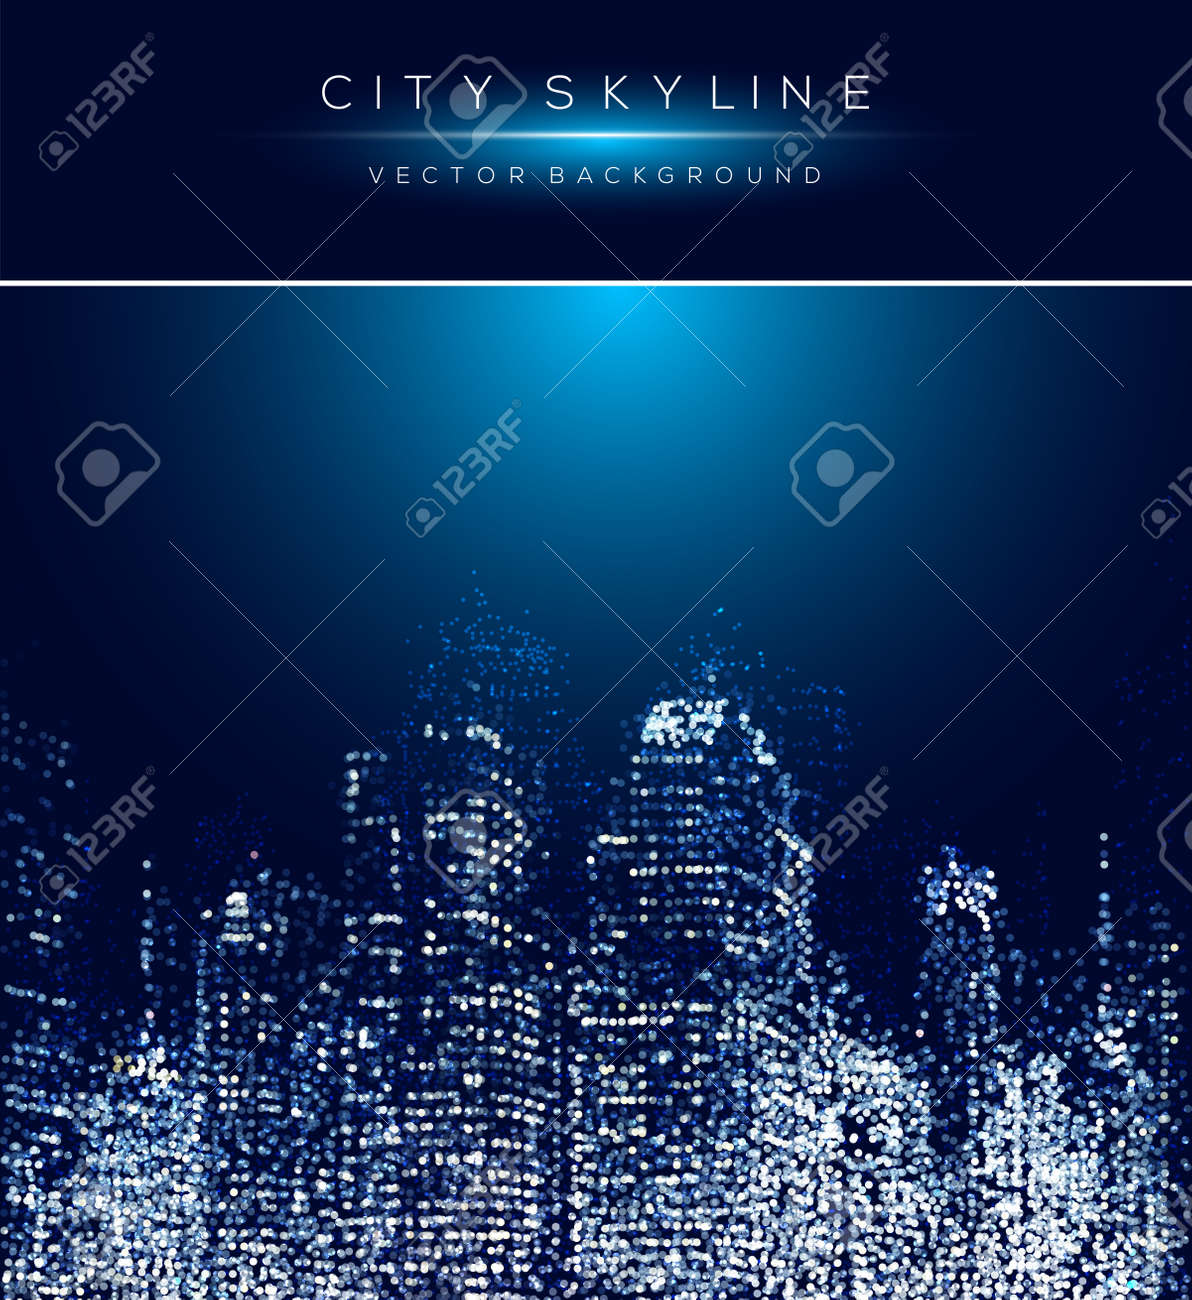 Modern city life abstract background design with dotted design concept. - 59435434